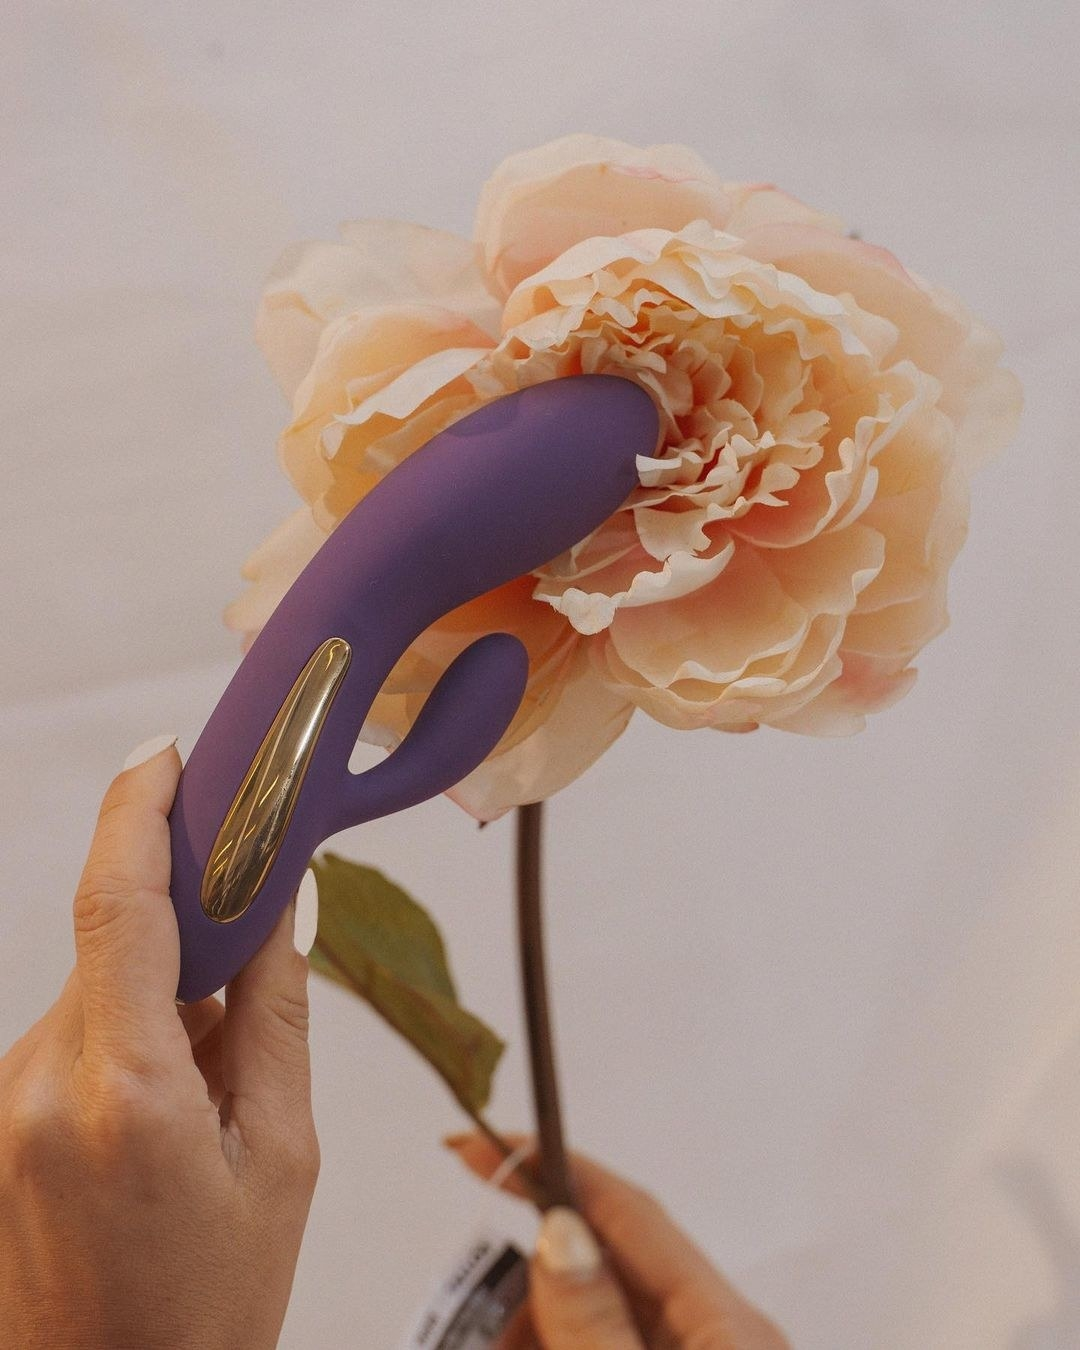 The vibrator, which has a larger curved fin for insertion, and a smaller fin for clit stimulation